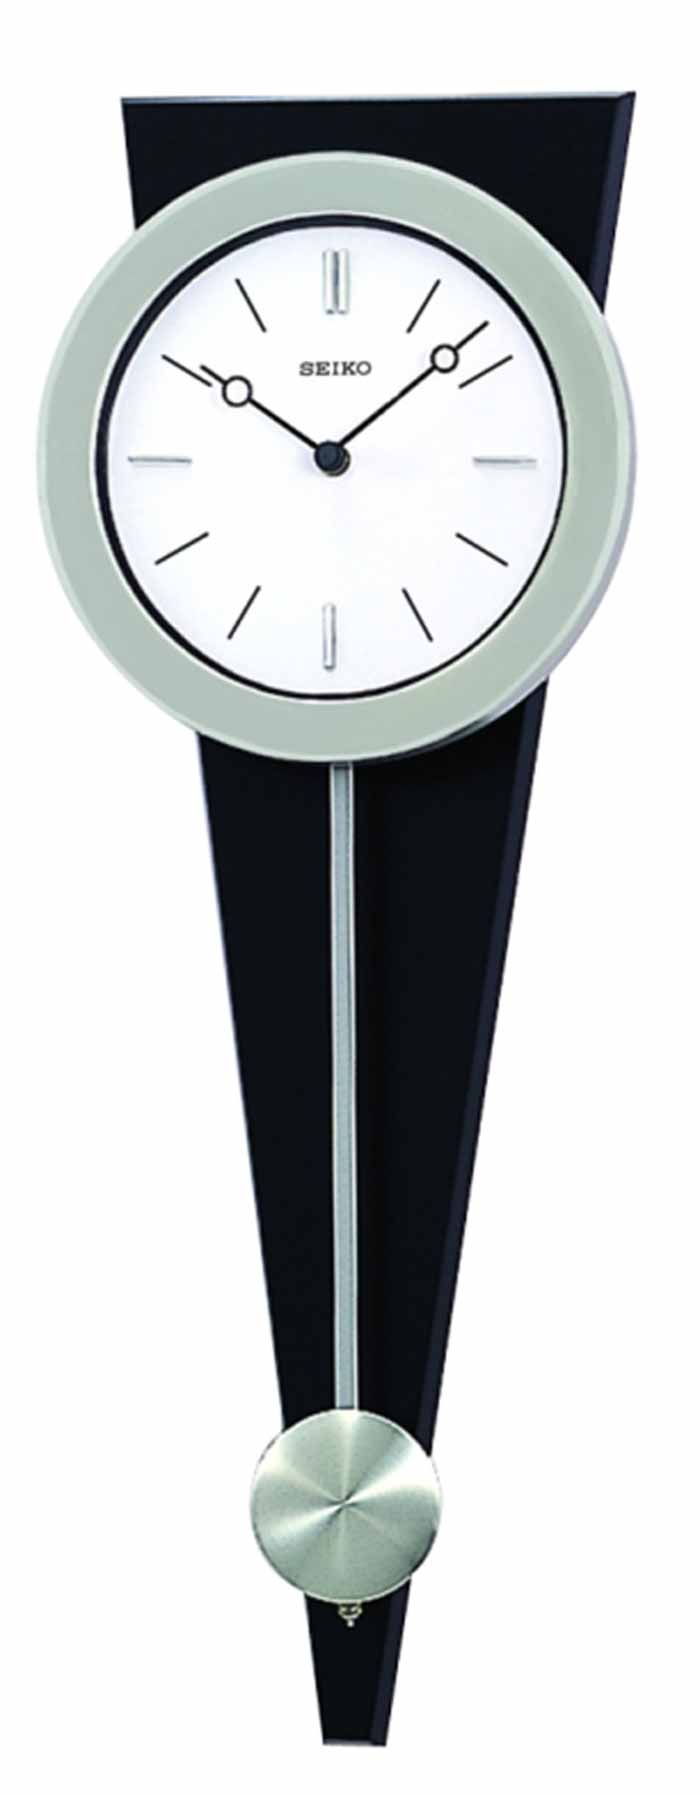 Seiko Qxc111slh X Contempo Wall Clock The Clock Depot